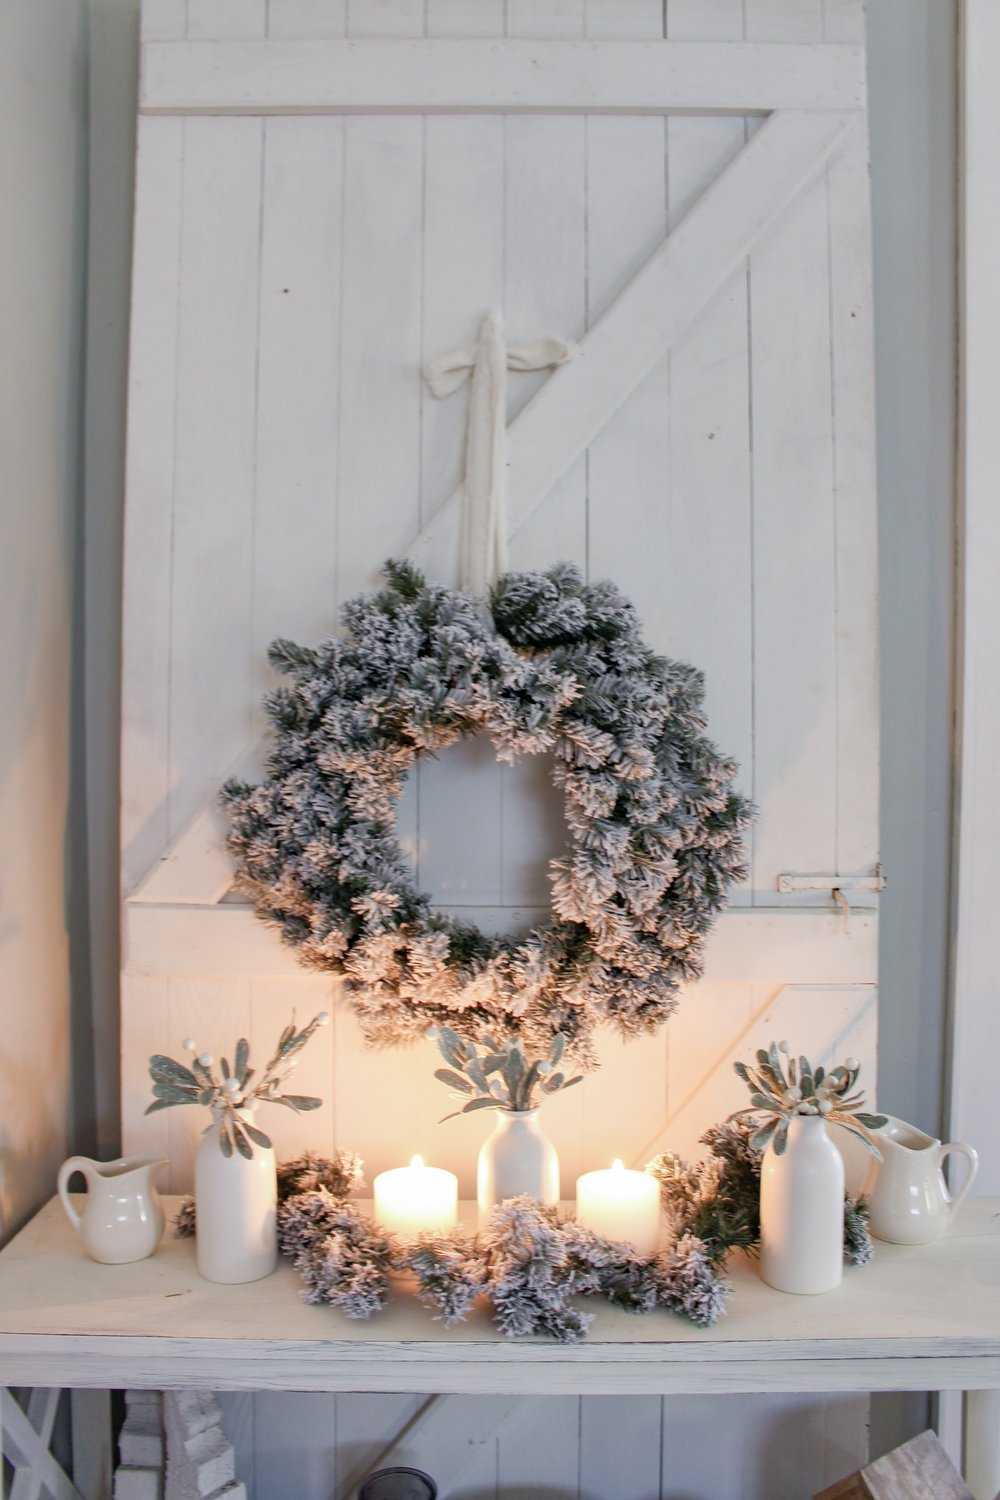 Flocked Wreath on barn door for Christmas